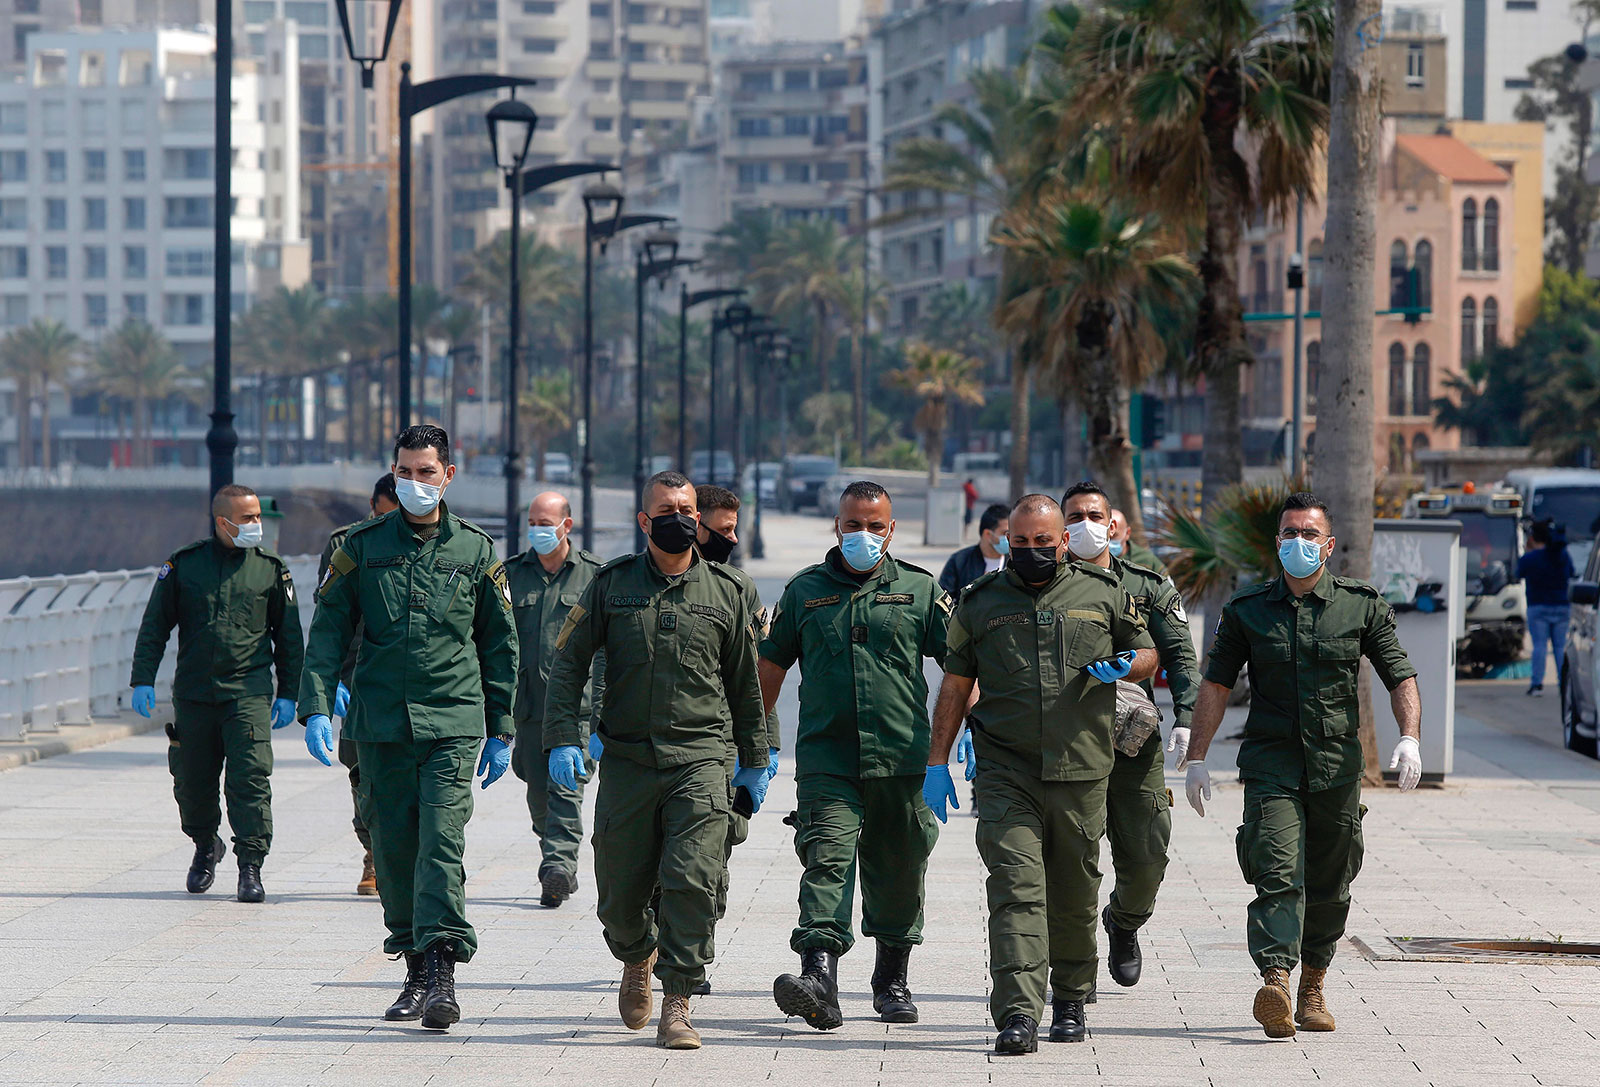 Police patrol a street in Beirut, Lebanon, on March 16.